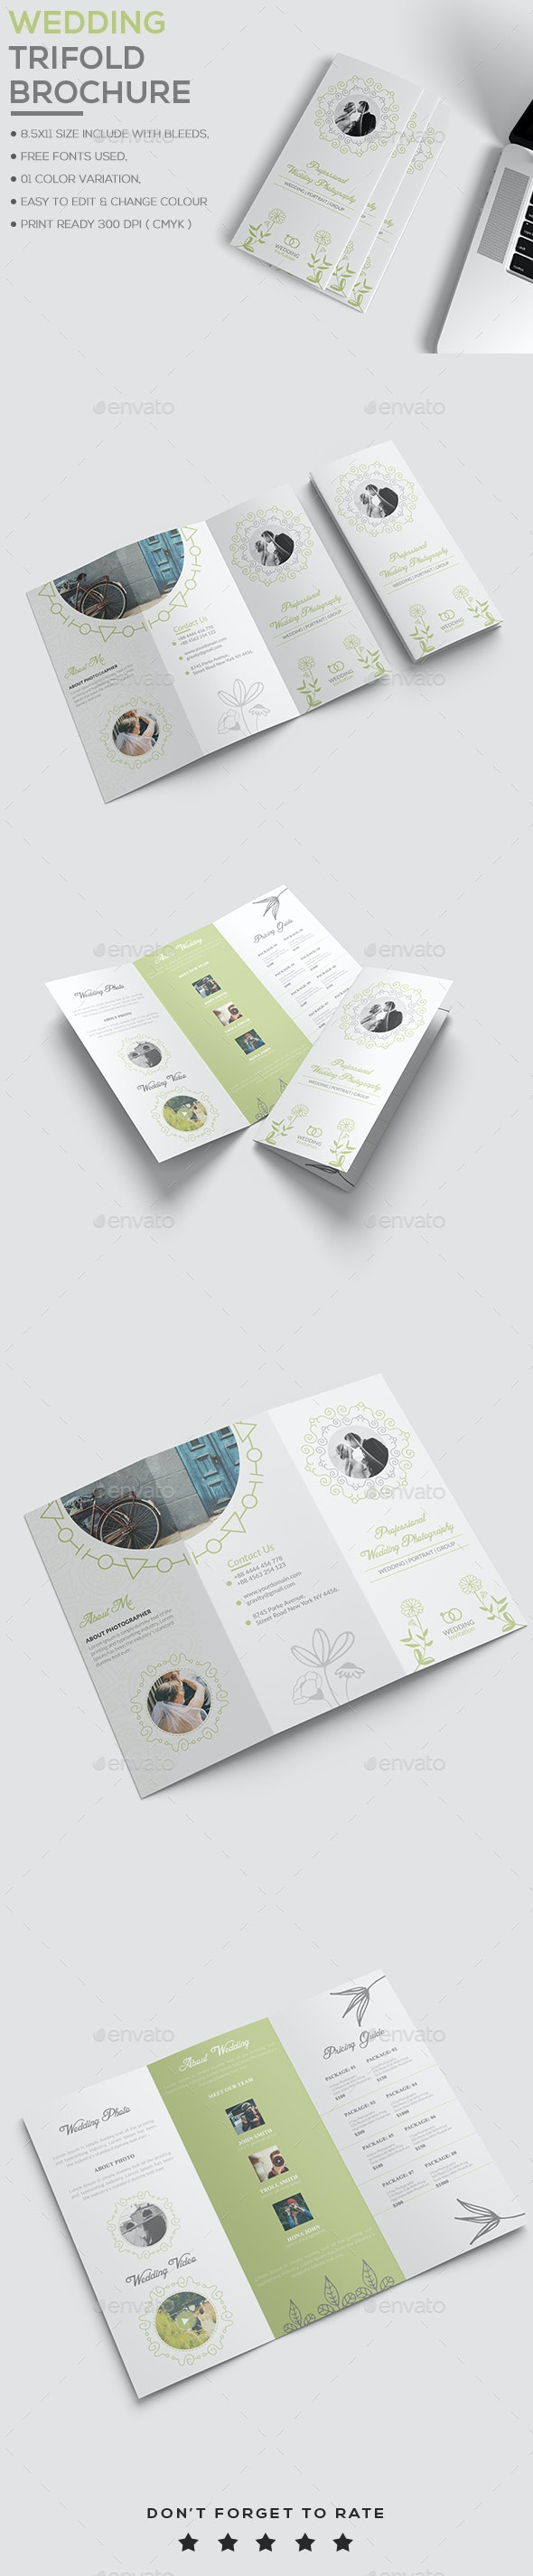 Wedding Brochure Template - Brochures Print Templates